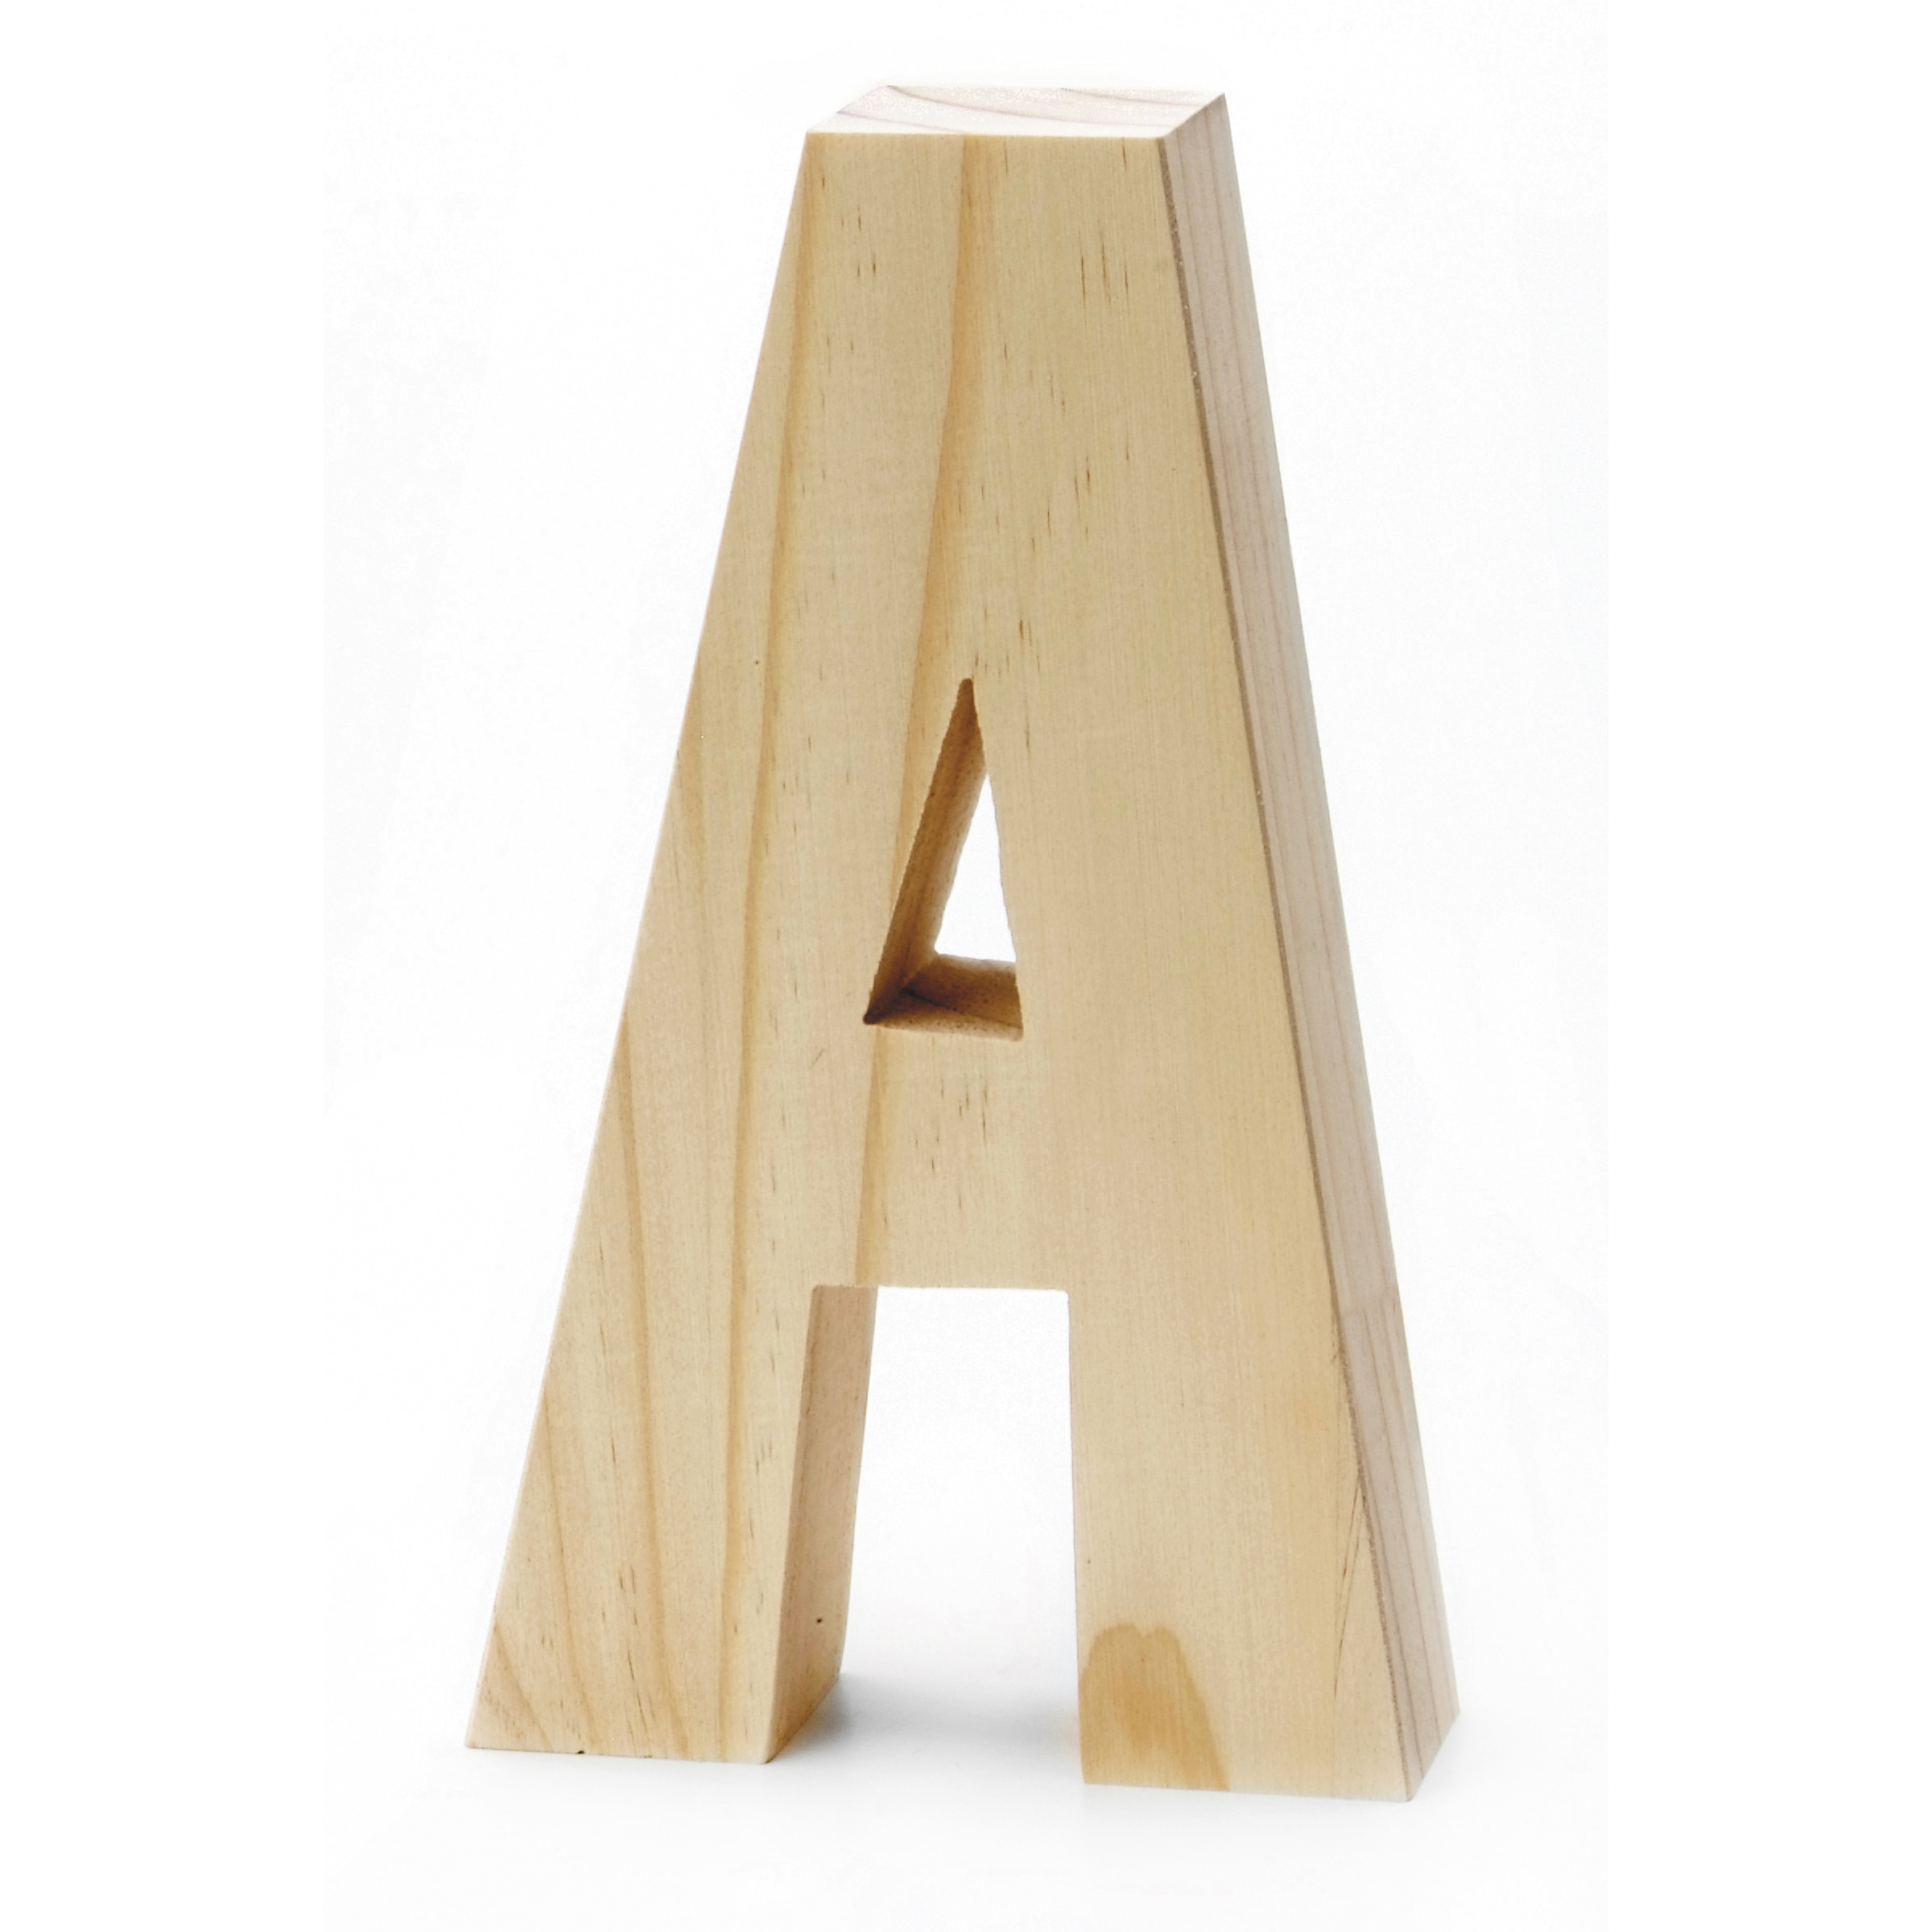 Chunky Wood Letter 8 X 5 In